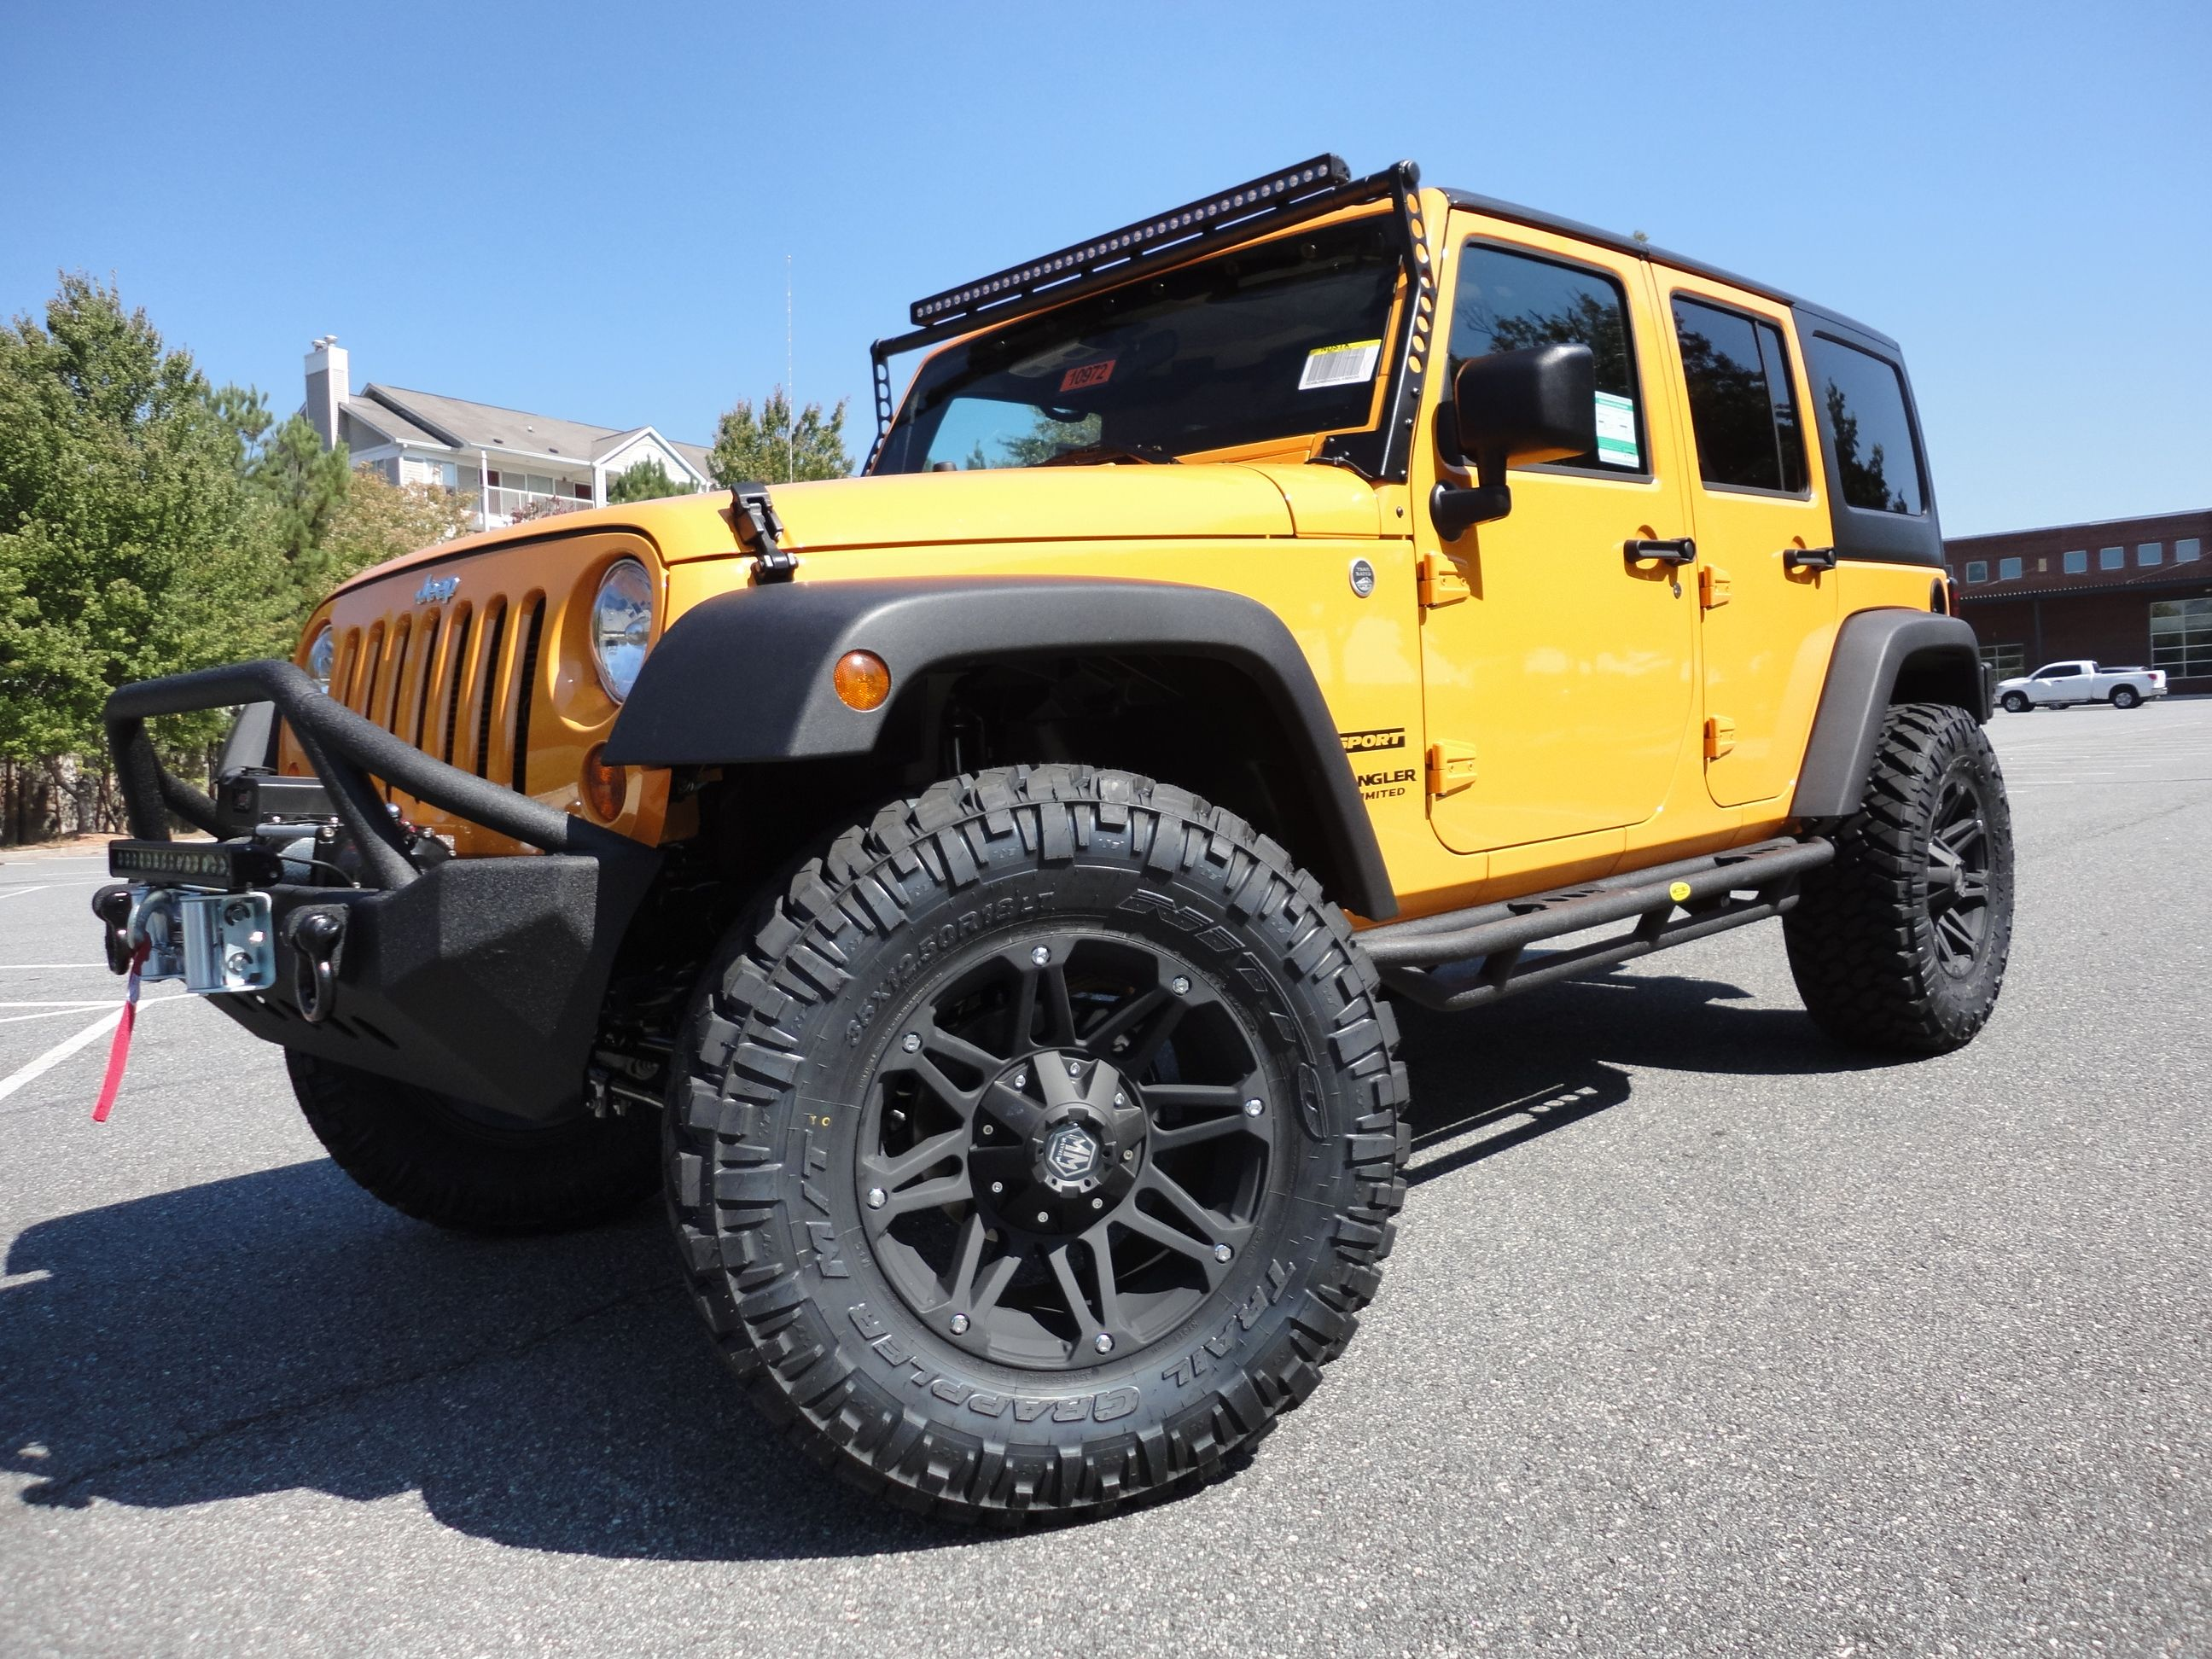 Get Your Lifted Jeep Wrangler In Roswell At Palmer Chrysler Dodge Chrysler Jeep Jeep Wrangler Lifted Jeep Wrangler